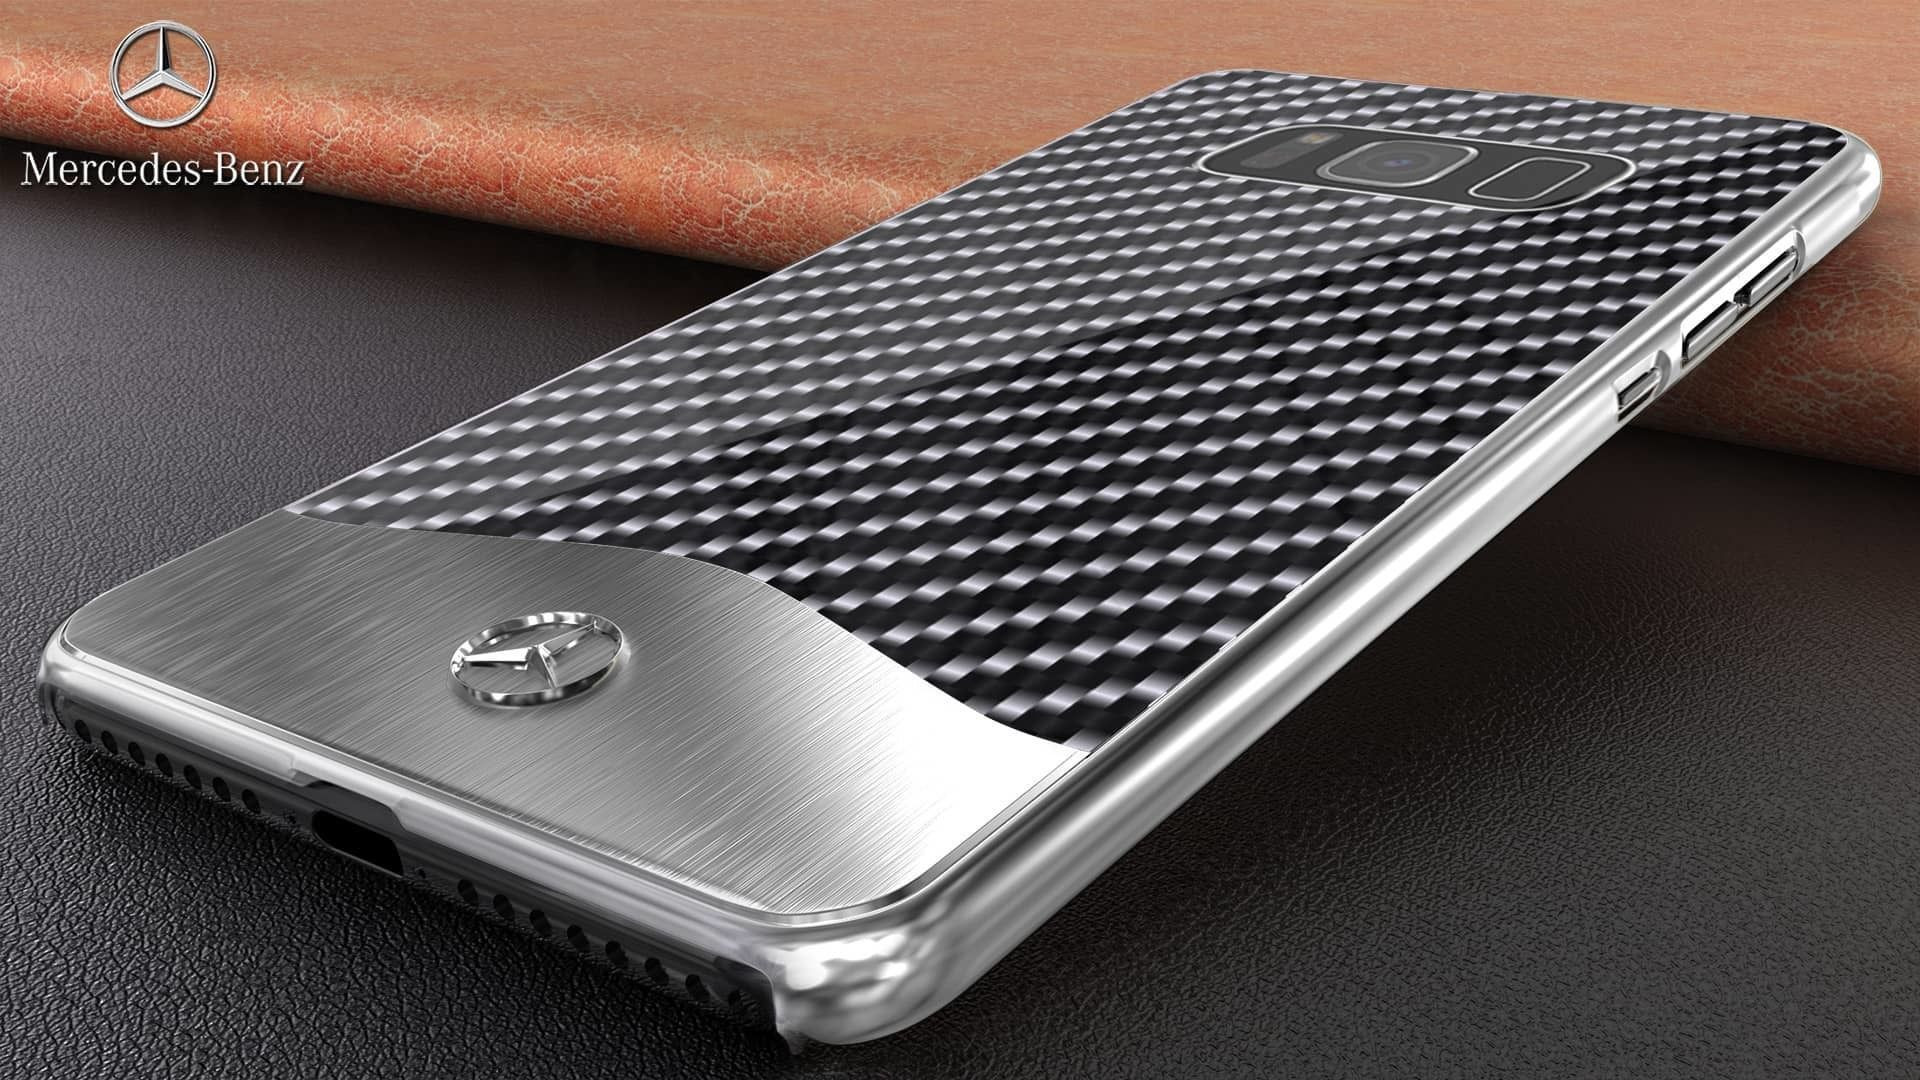 timeless design 170ed 46890 Mercedes Benz ® Samsung Galaxy S8 Plus SLR McLaren Carbon Fibre (Limited  Edition) Electroplated Metal Hard Case Back Cover